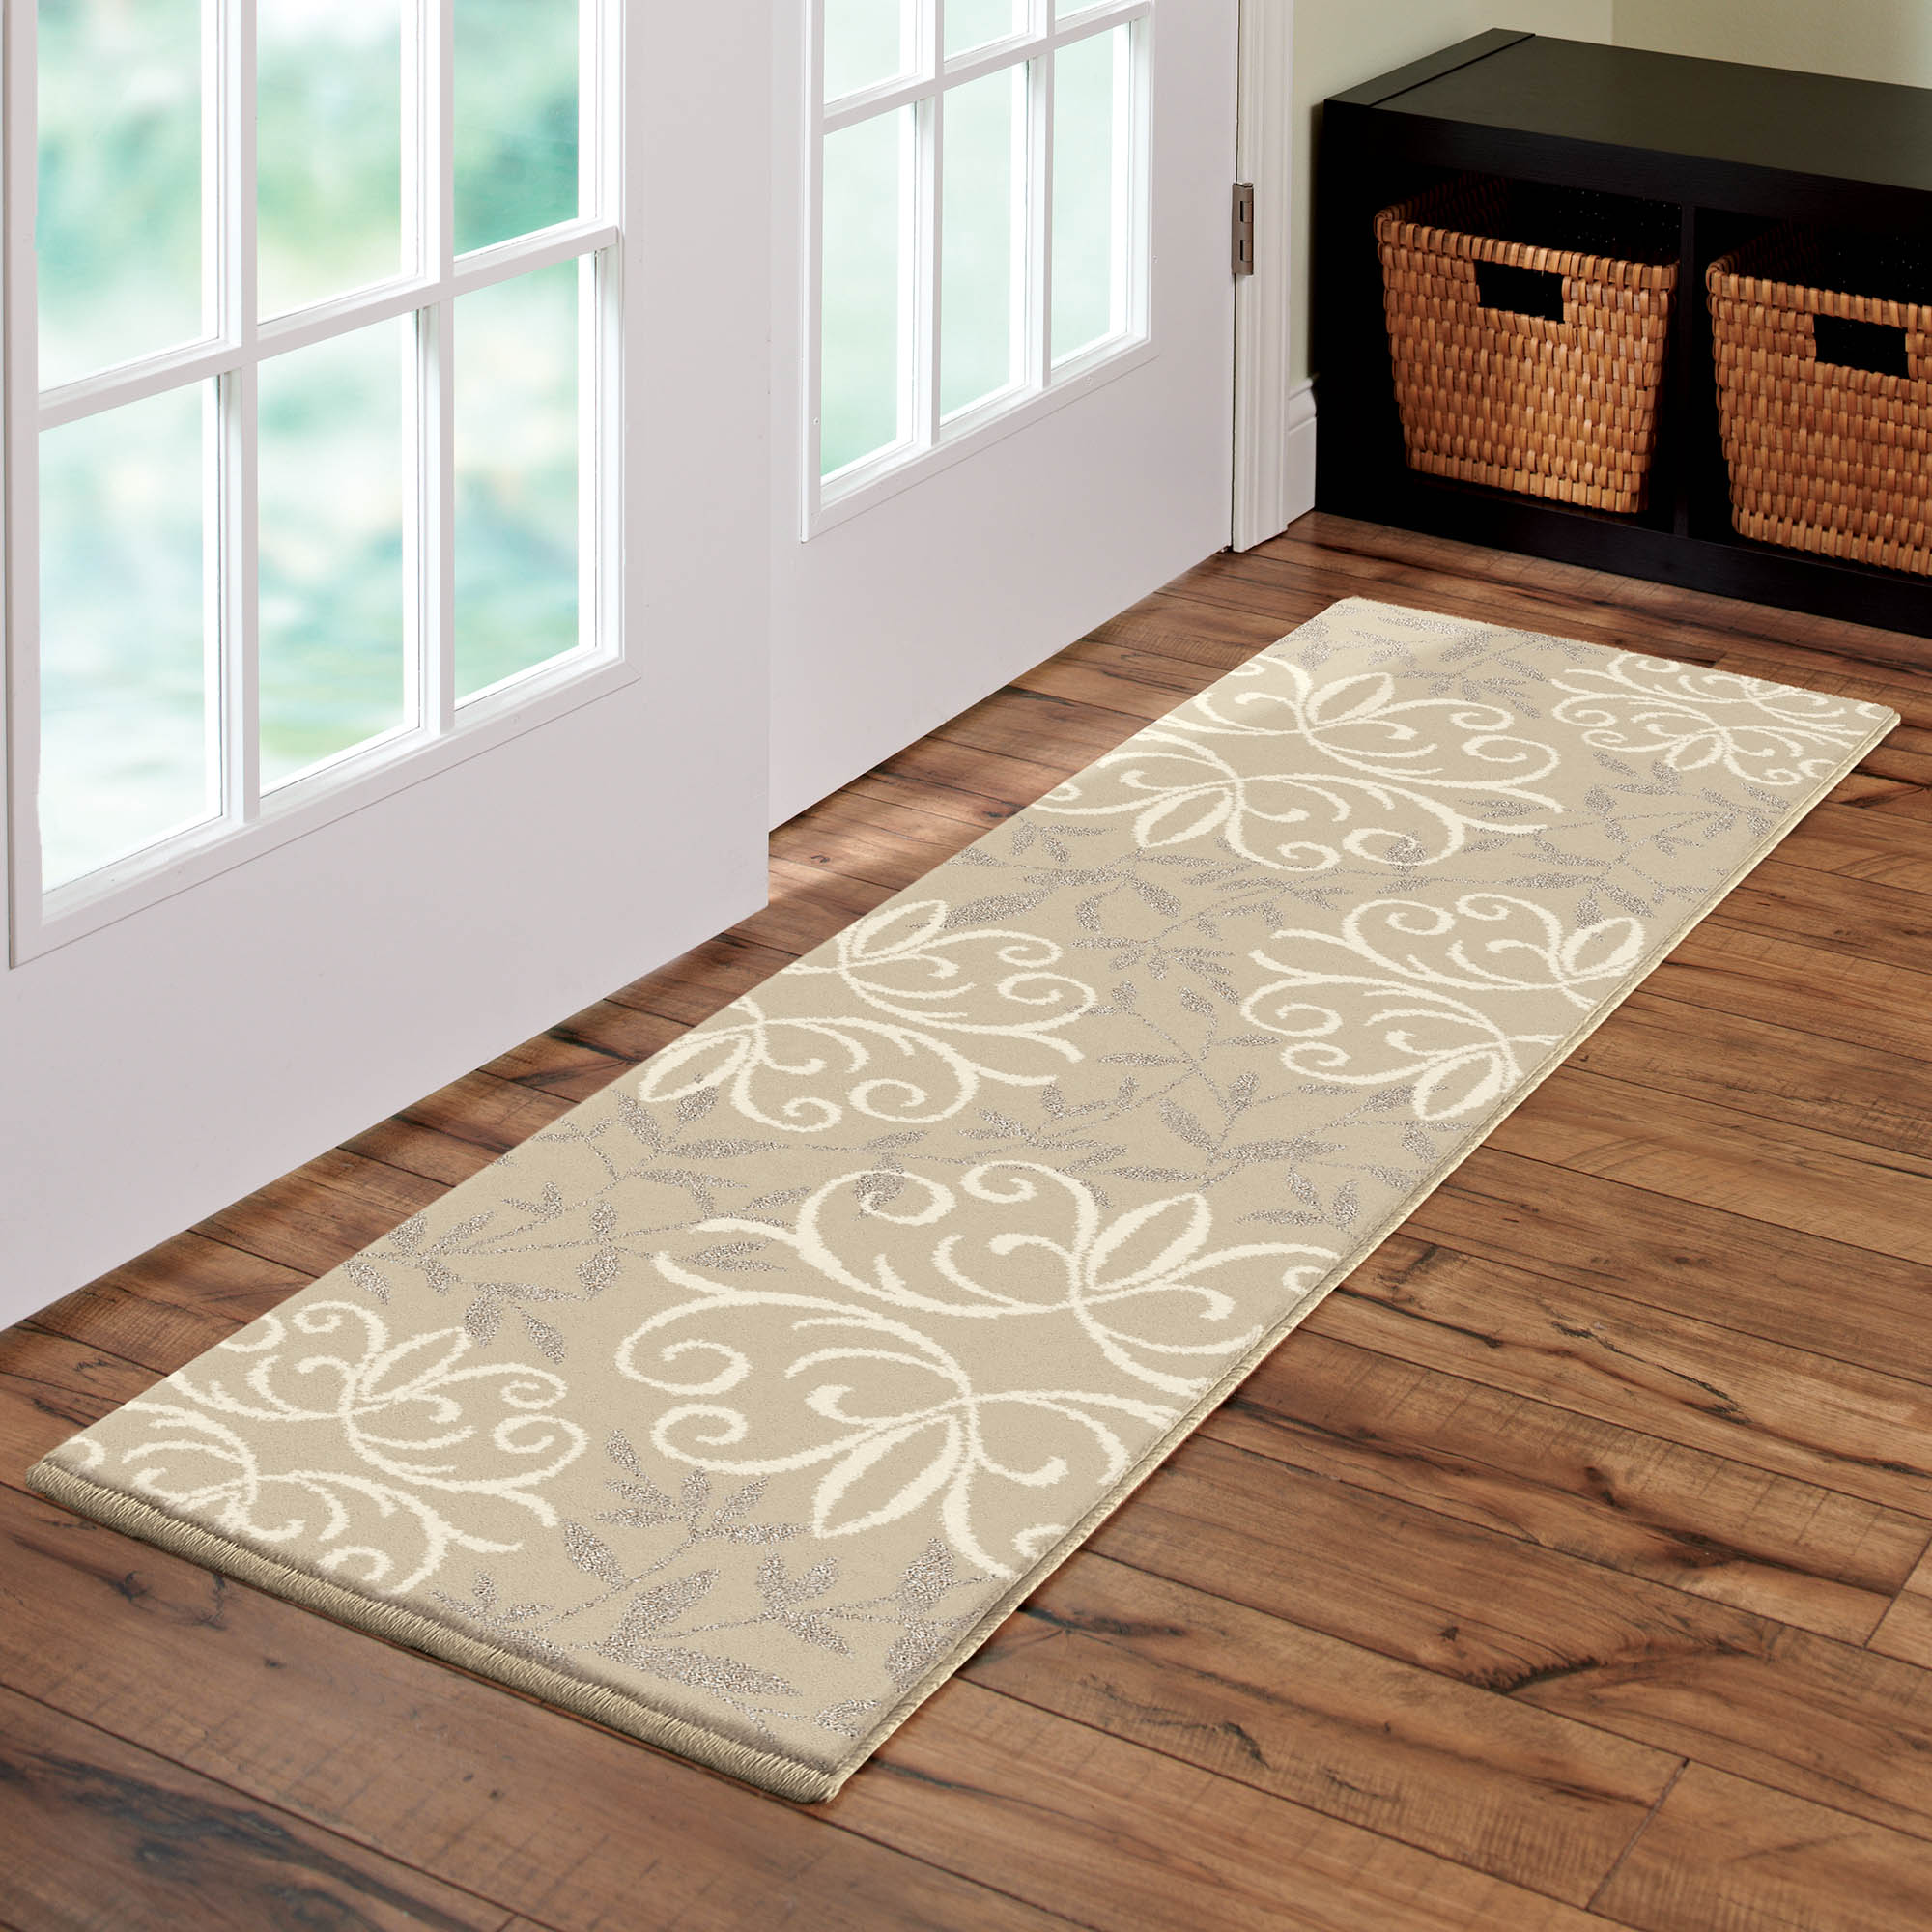 Click here to buy Better Homes & Gardens Iron Fleur Area Rug or Runner by Orian Rugs.